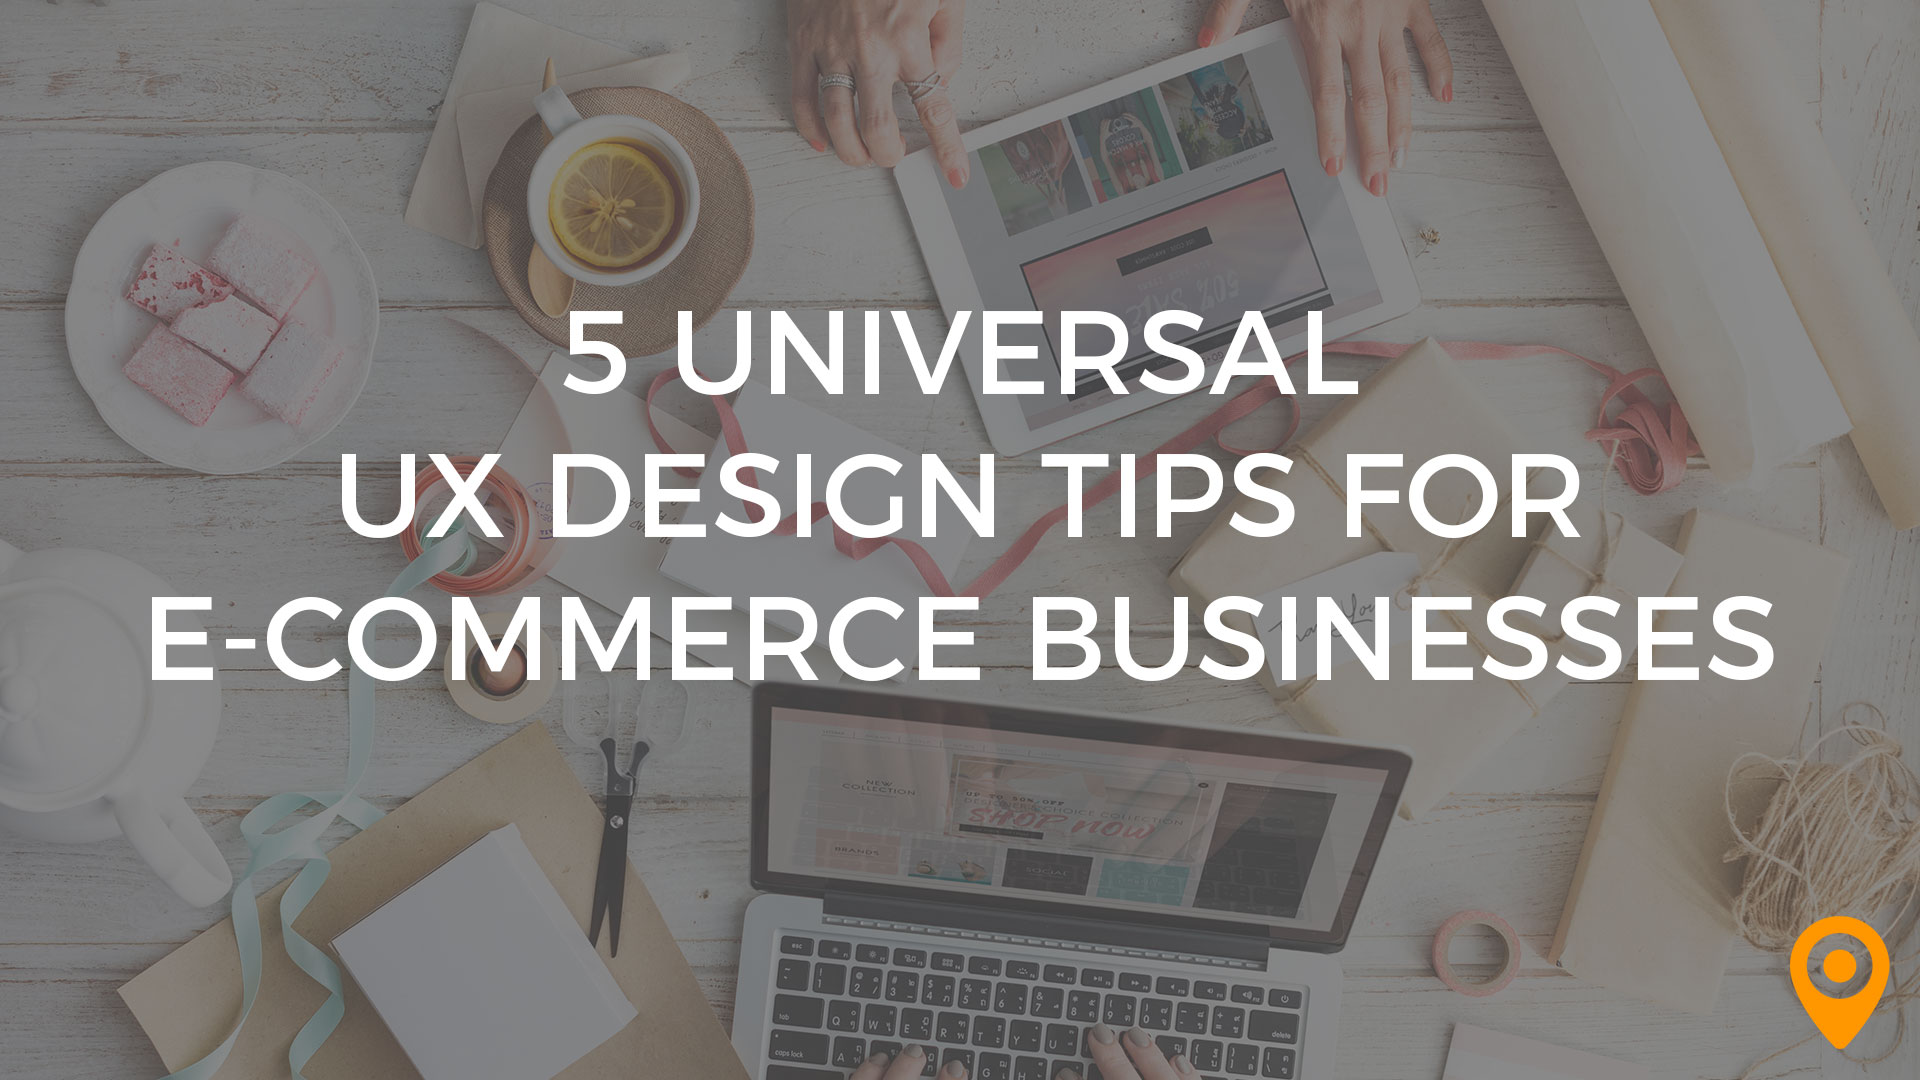 5 Universal UX Design Tips for E-commerce Businesses